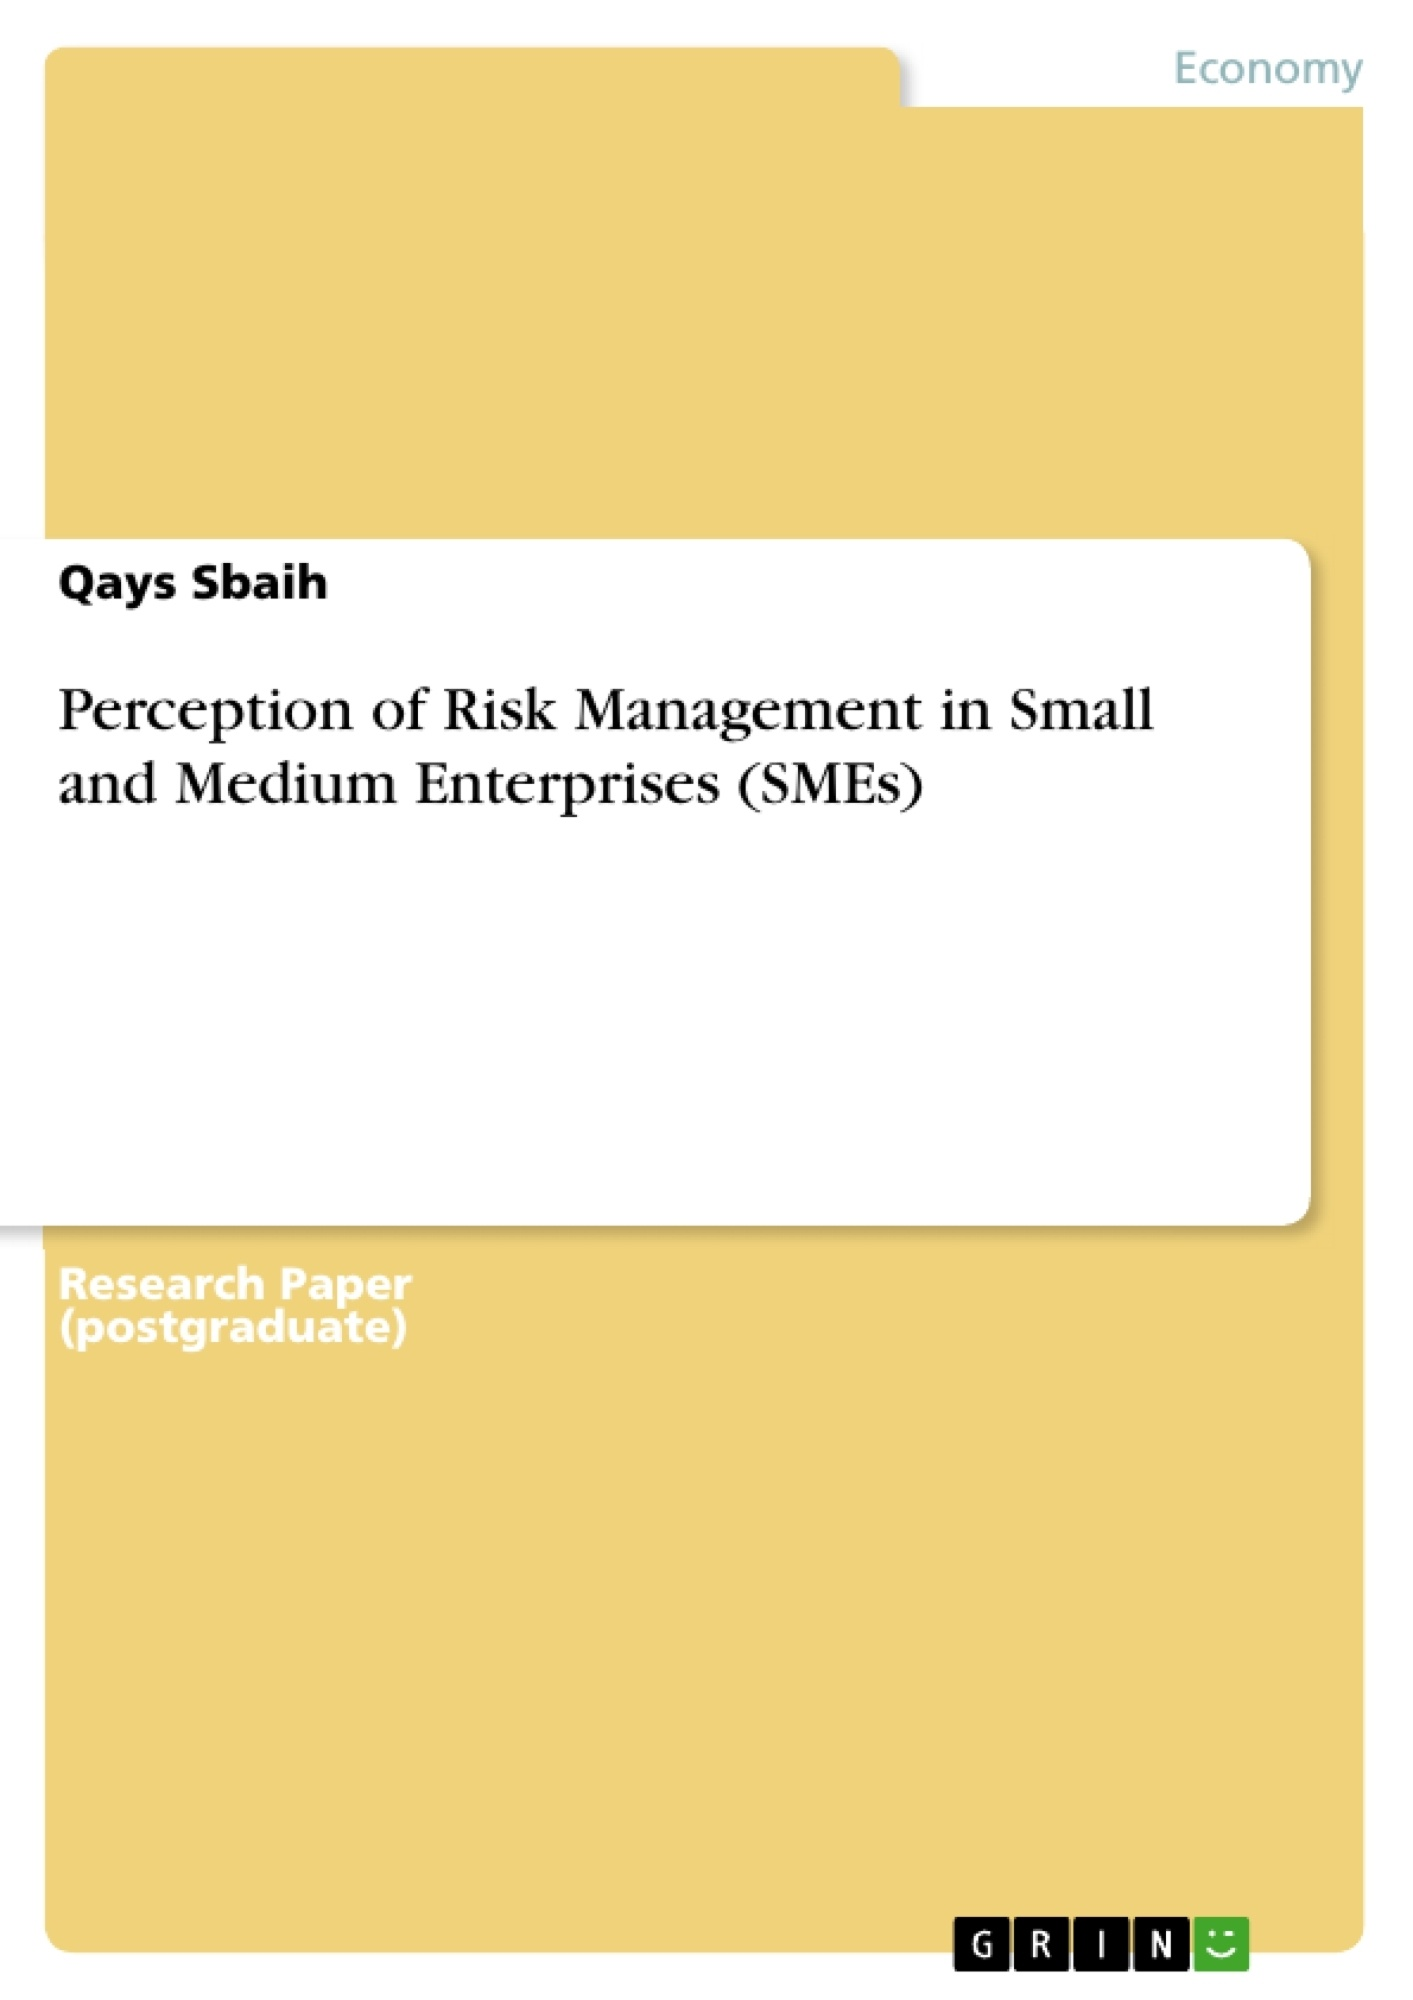 Title: Perception of Risk Management in Small and Medium Enterprises (SMEs)